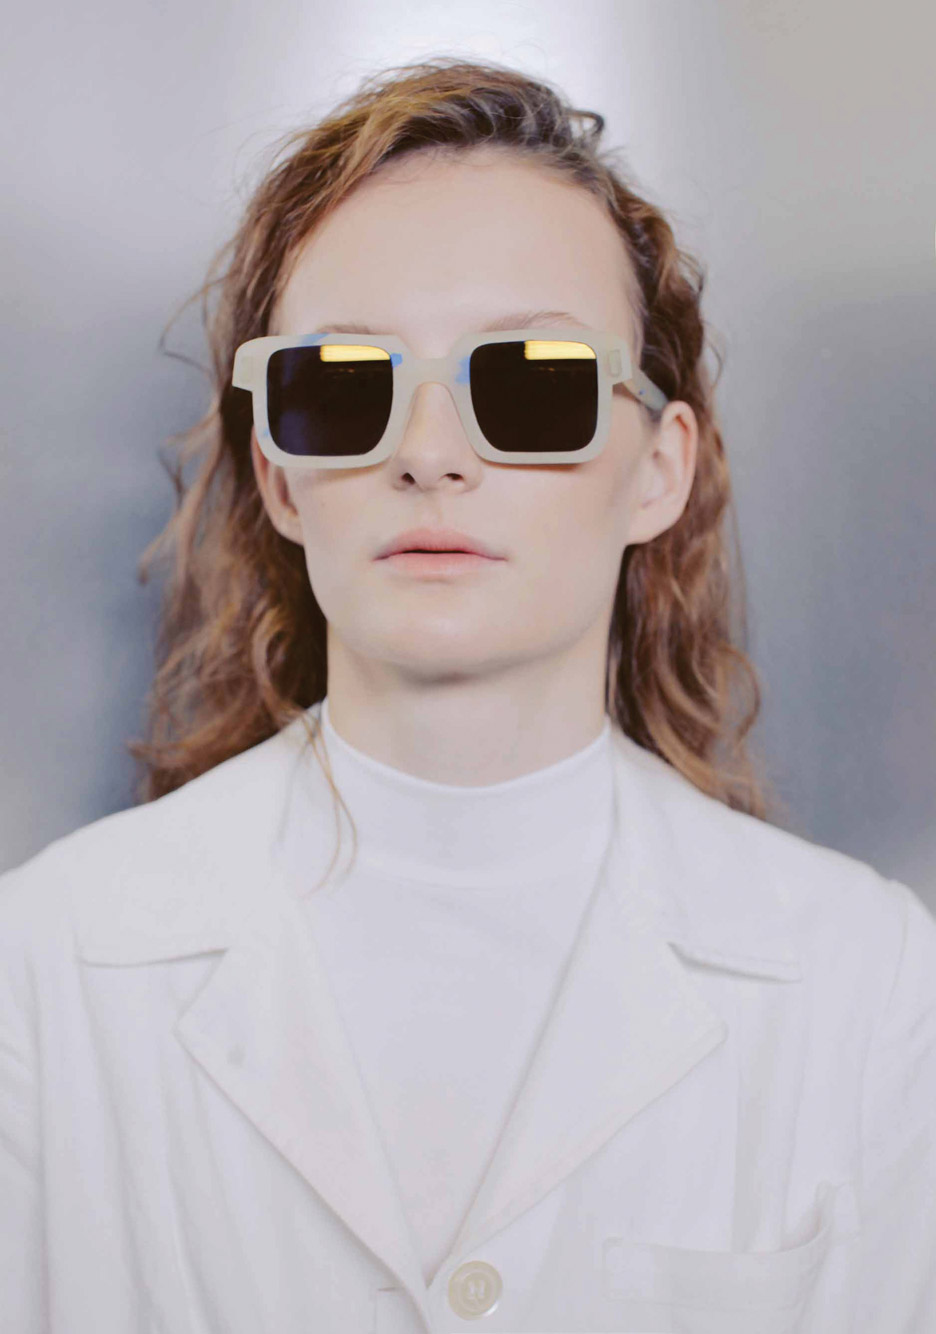 bioplastic-sunglasses-collection-1-crafting-plastics-milan-design-week-2016-fashion-anna-smoronova_dezeen_936_0